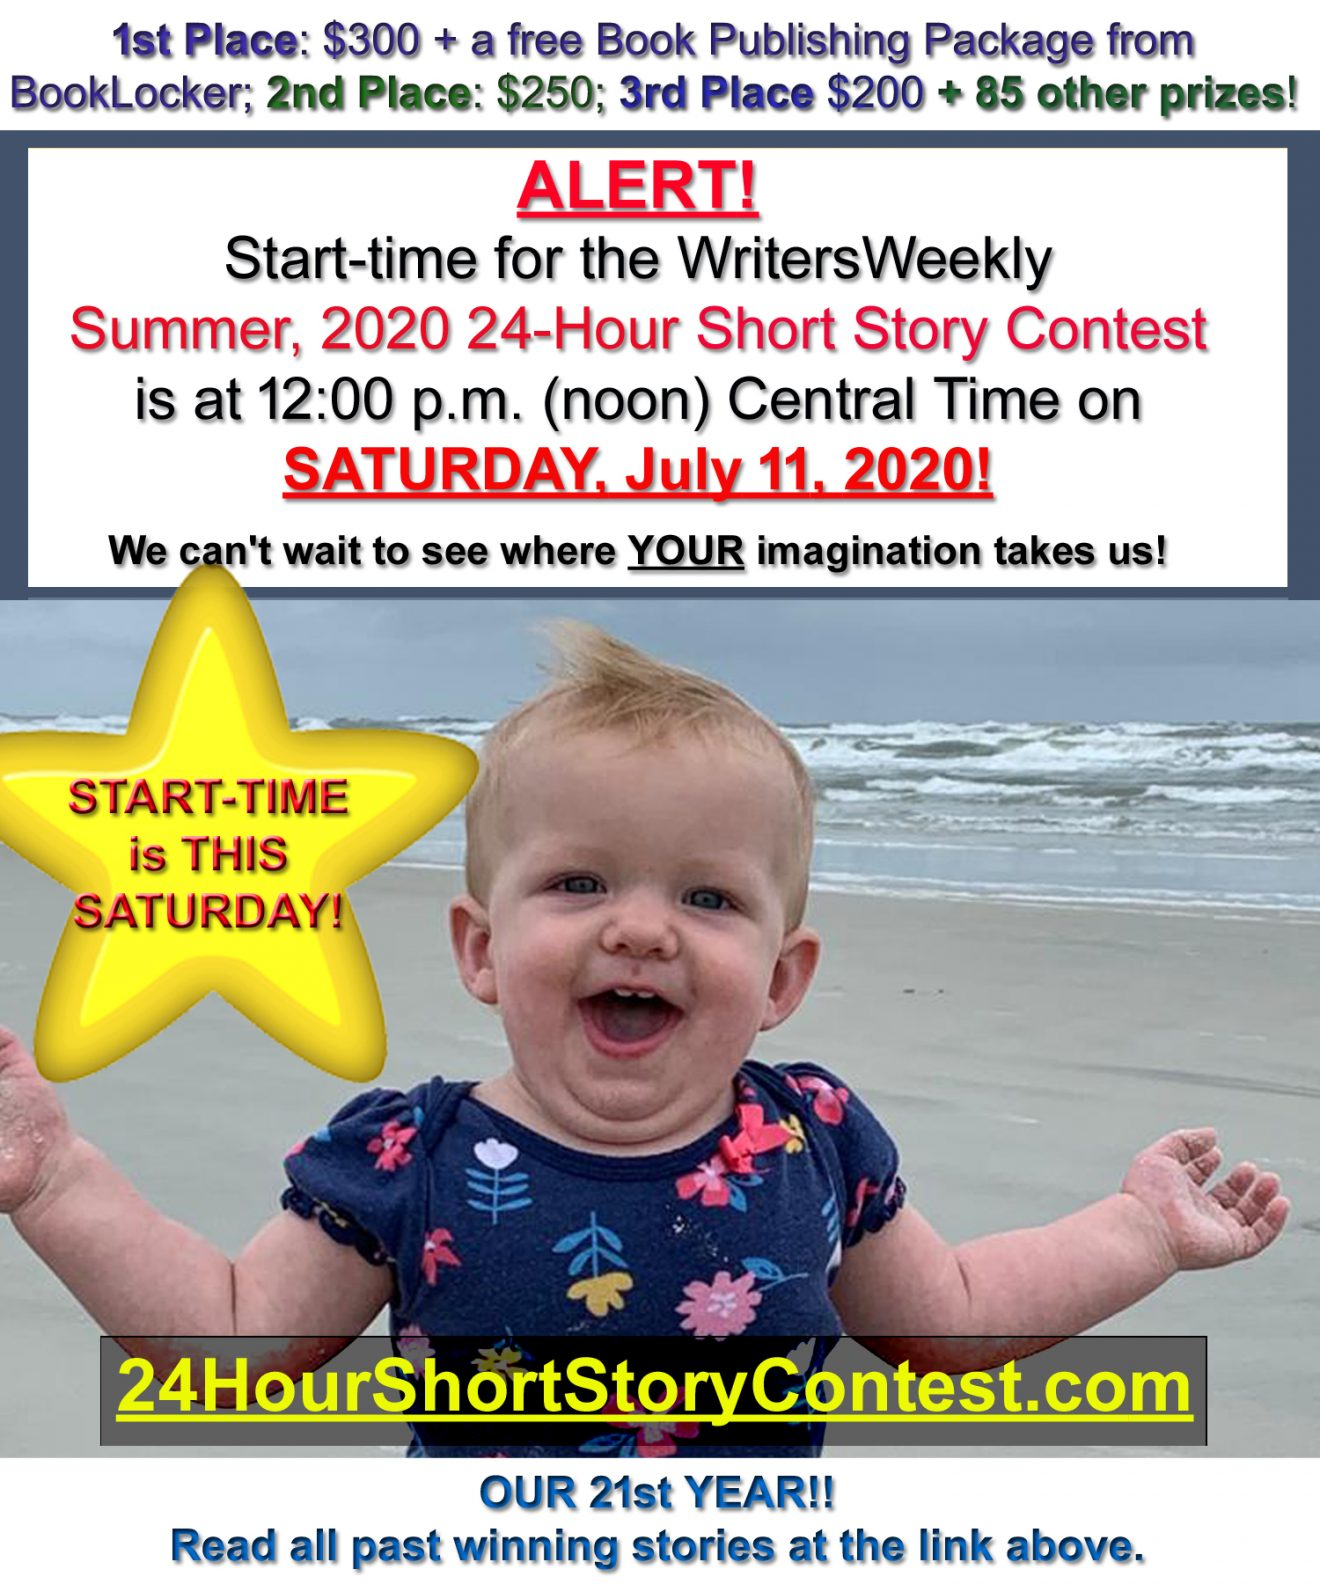 LAST CHANCE! THIS SATURDAY!! What will the Summer, 2020 24-Hour Short Story Contest Topic Be?!?!